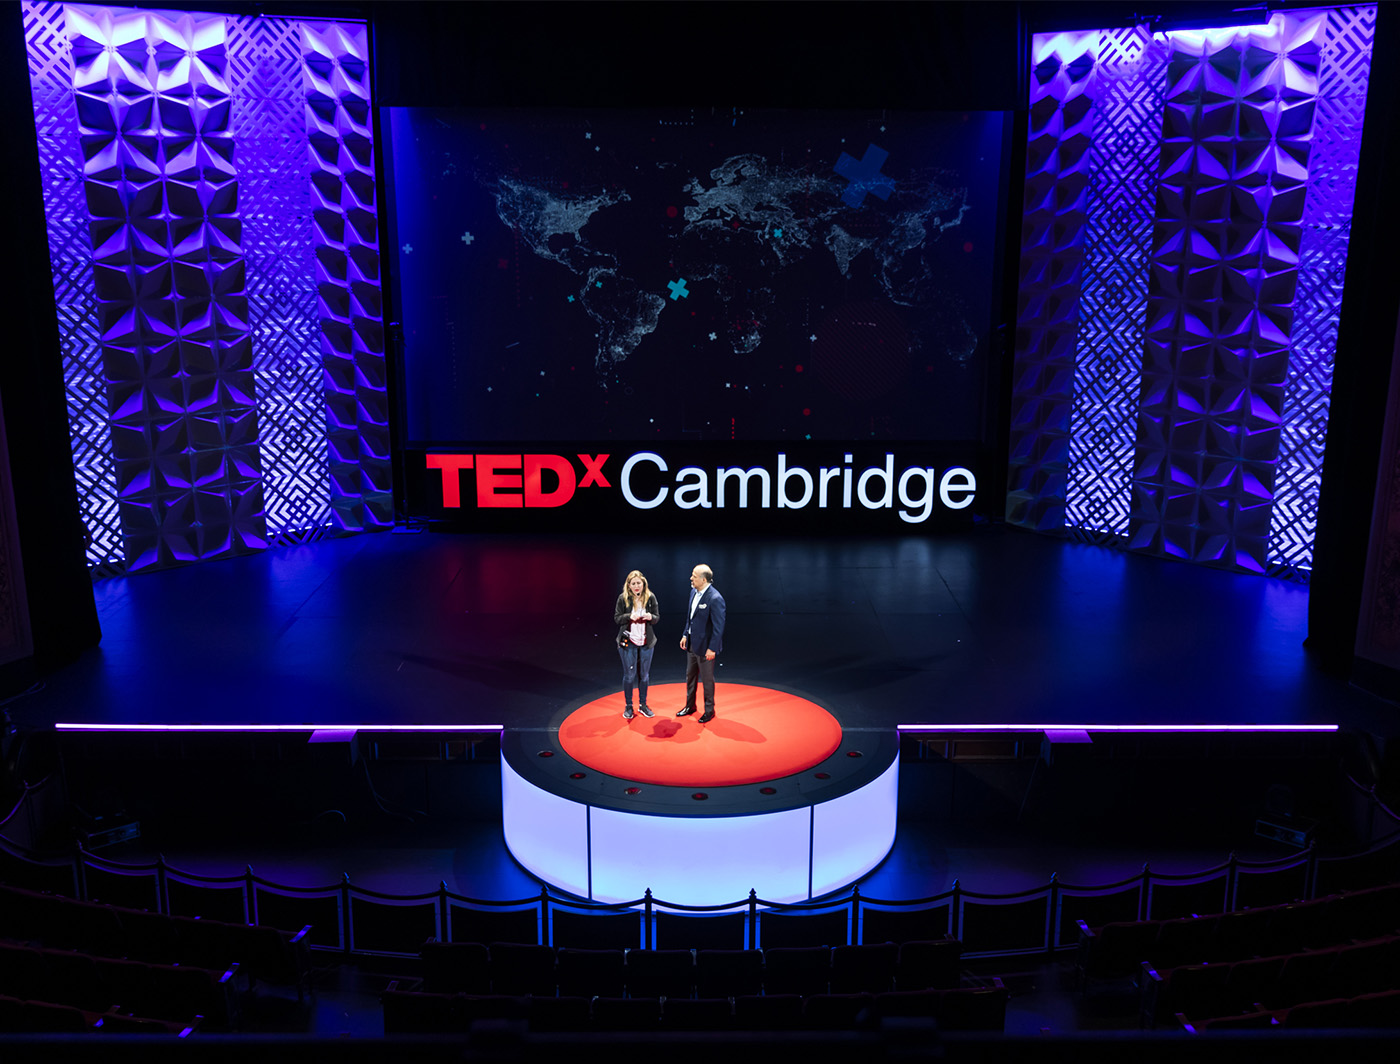 Zeddit and Comb SuperLever panels created this backdrop at the 2019 TEDxCambridge event